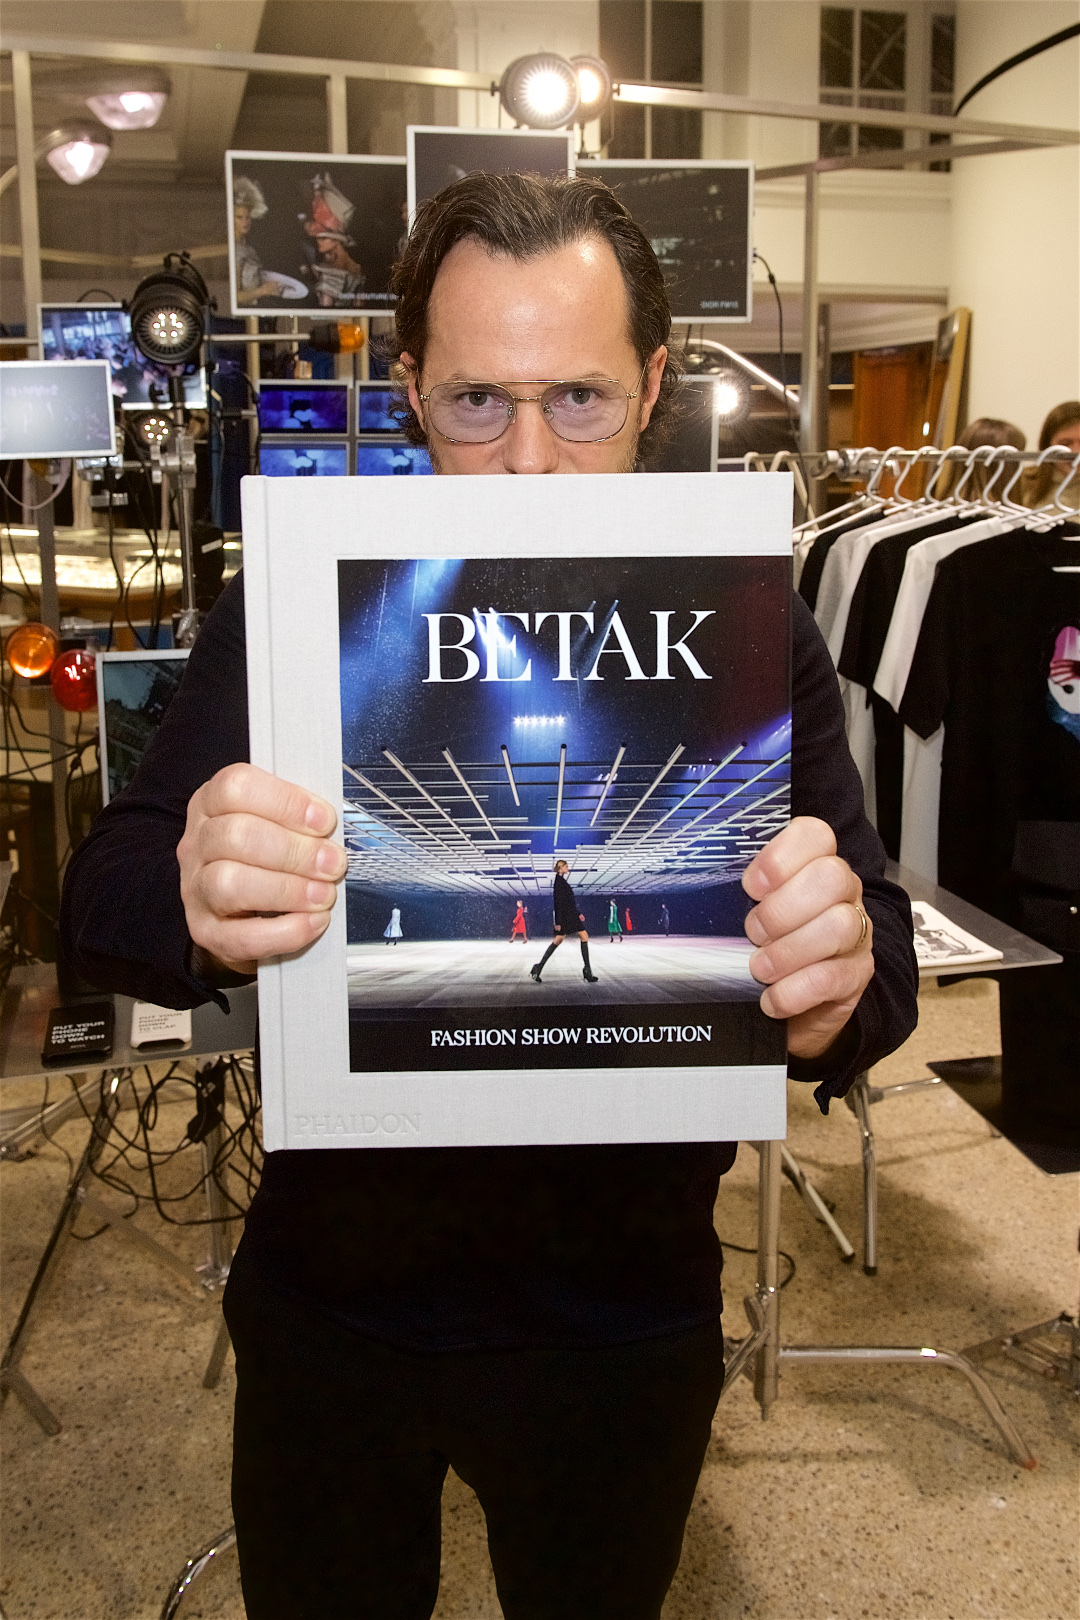 Alexandre de Betak with his new book